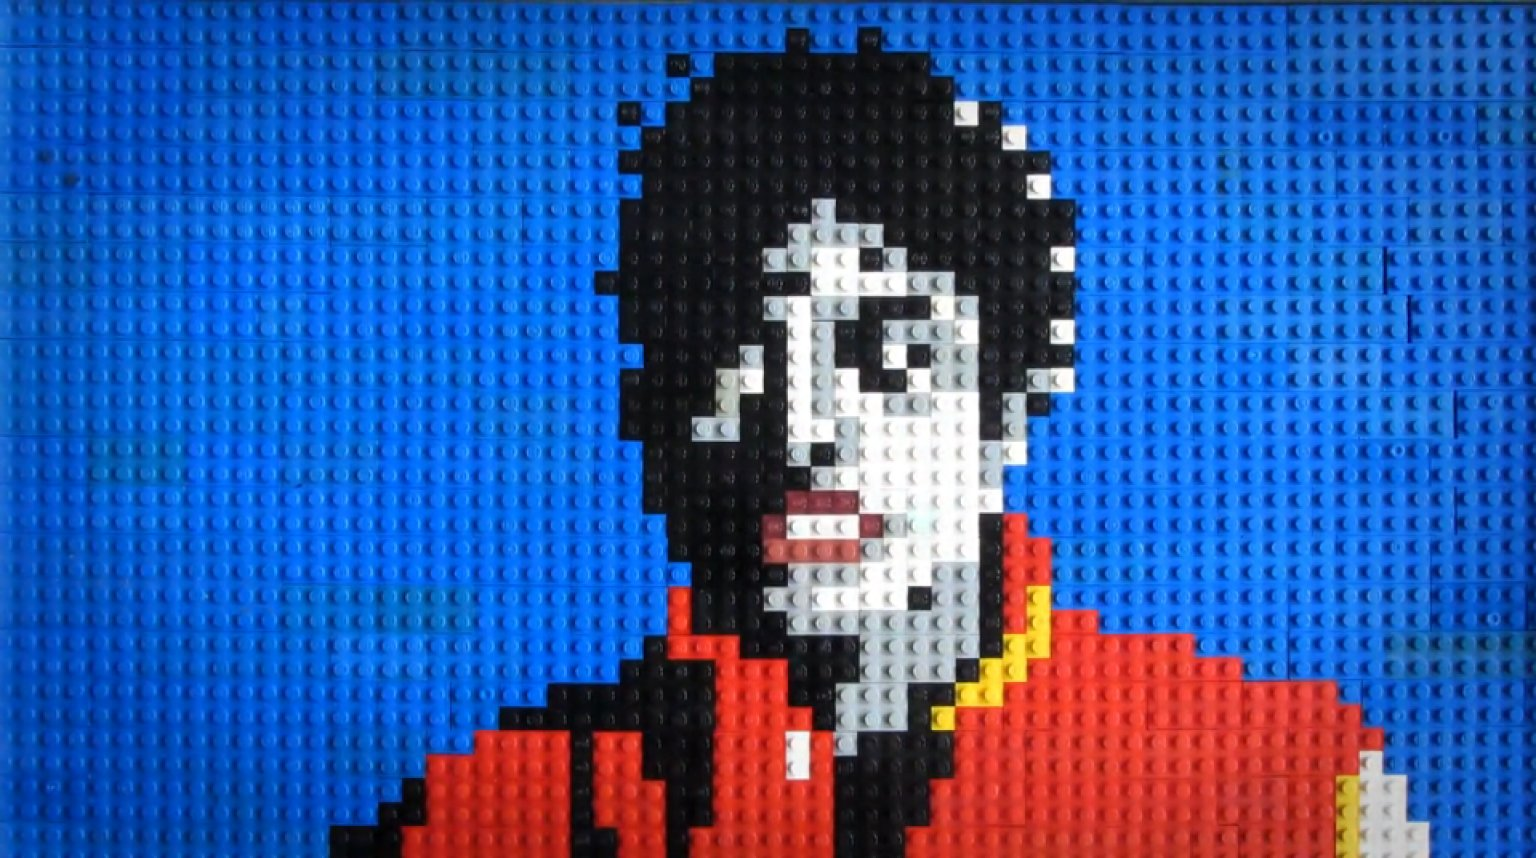 Michael Jackon S Thriller Music Video Recreated With Legos